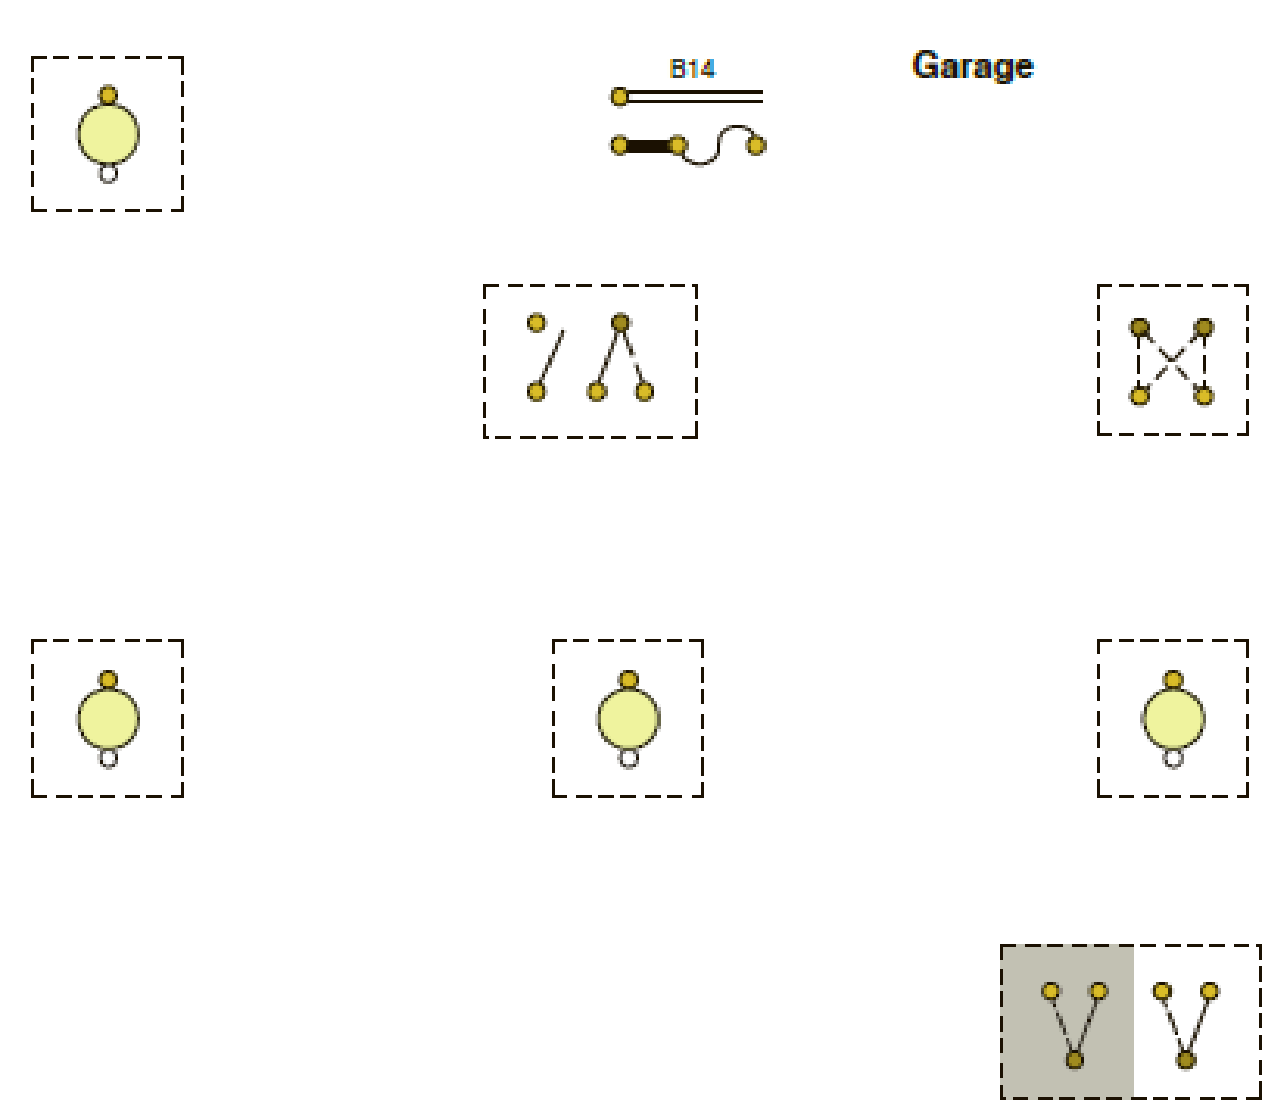 Using the suggested cable layout of the garage lighting